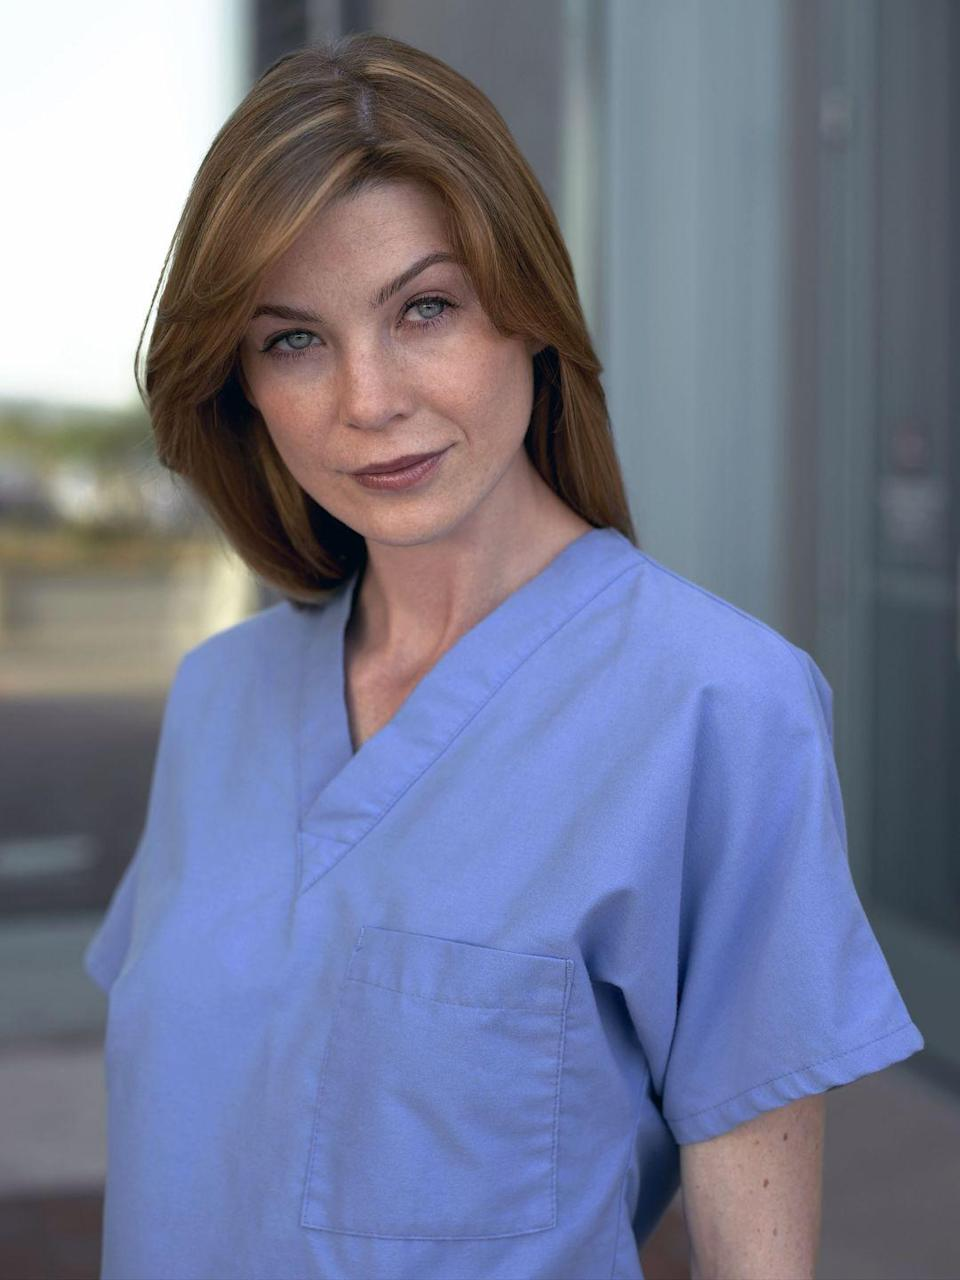 <p>While <em>Grey's Anatomy </em>has definitely seen its fair share of casting changes since it premiered in 2005, a handful of its OG cast are still with the show, including the titular Grey. Here's Ellen Pompeo as Meredith Grey in season 1. </p>